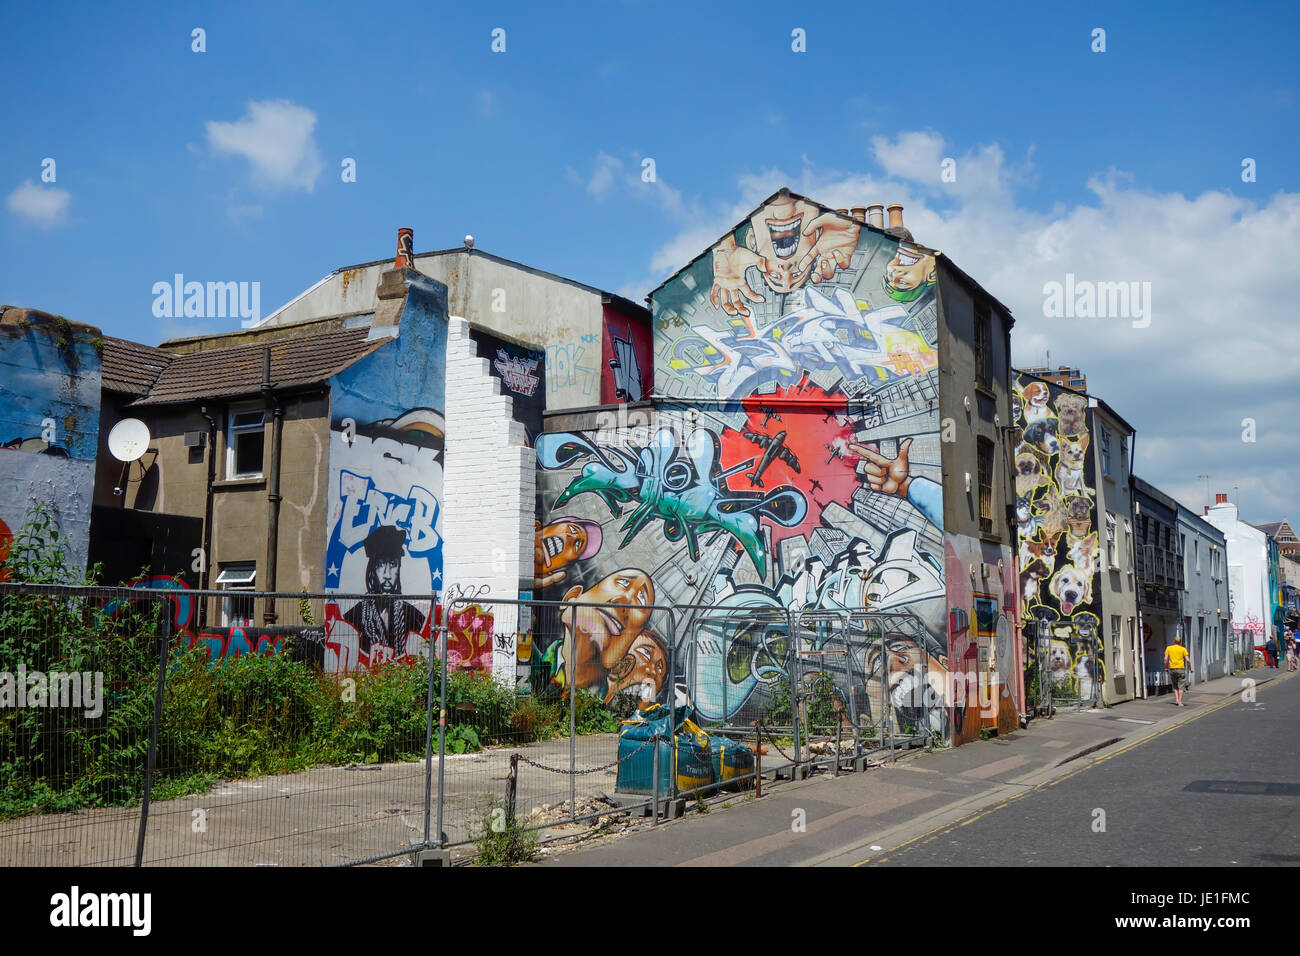 Graffiti Street Art in Brighton Stockbild